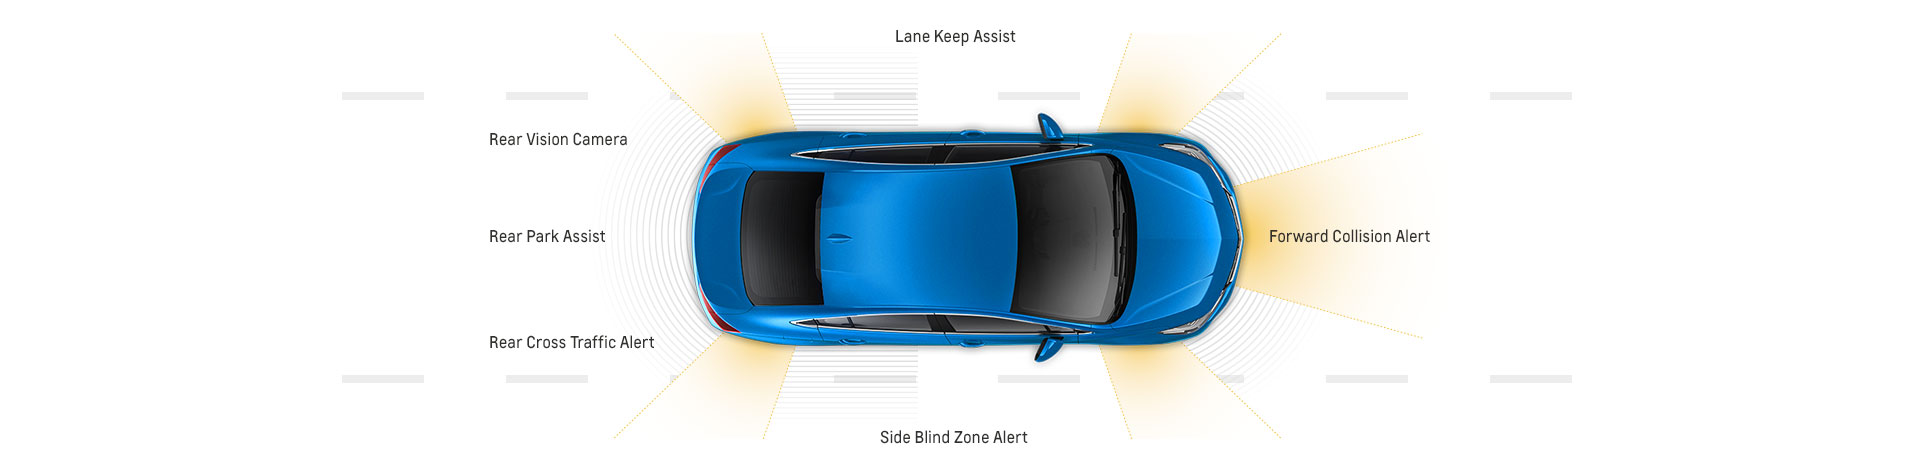 A diagram showing the high tech safety features of the 2017 Chevy Cruze.